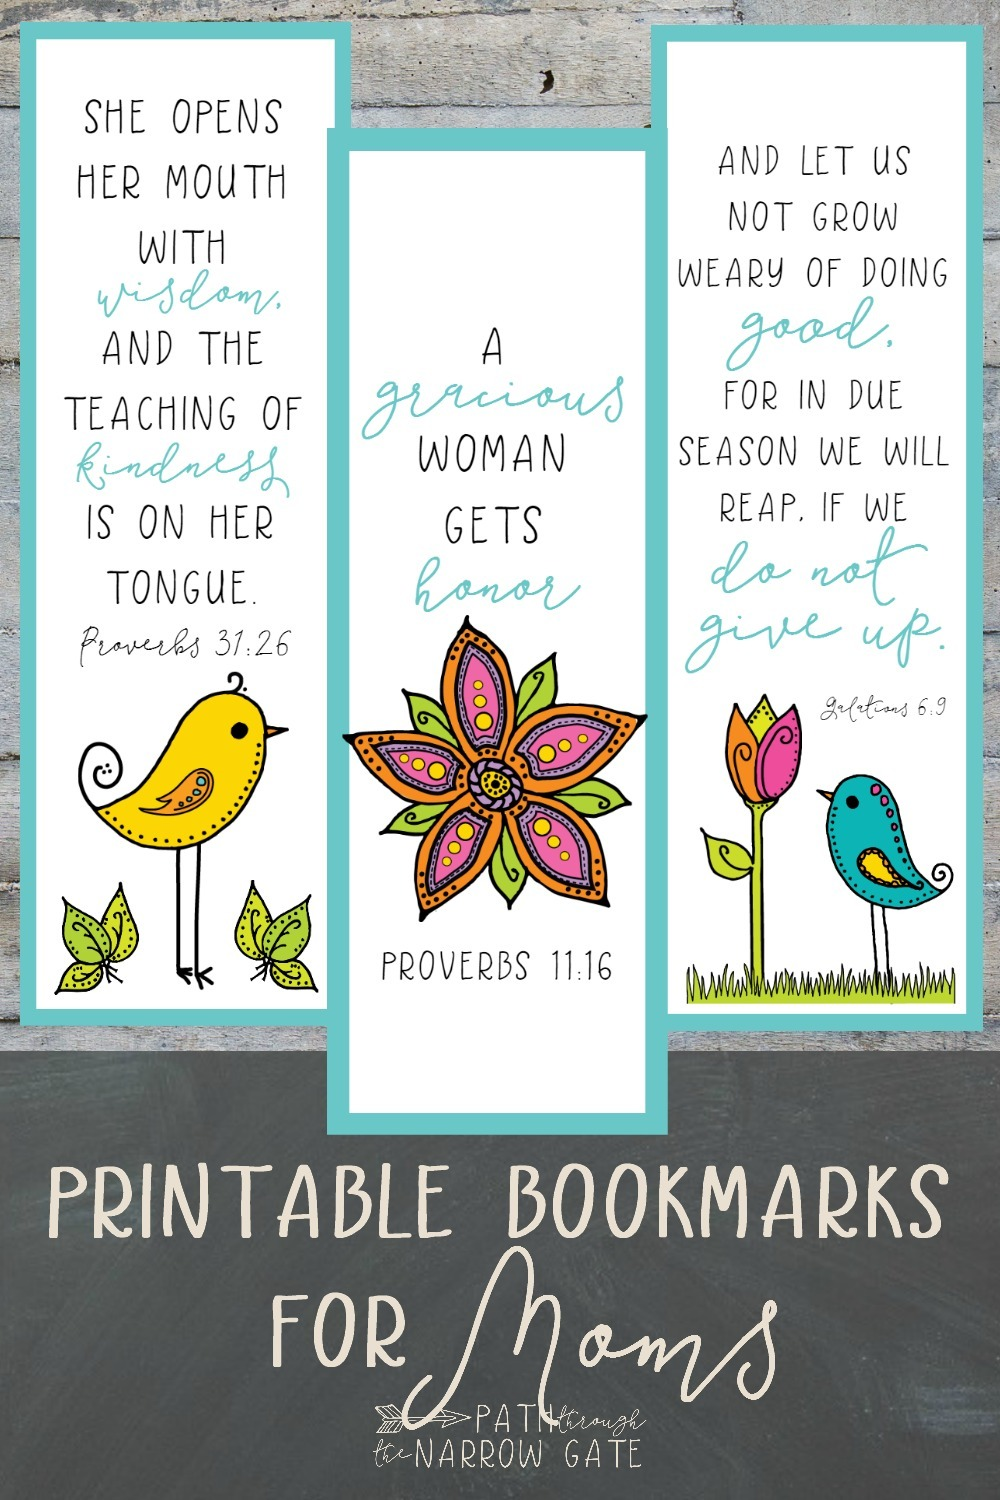 These printable bookmarks for moms would be perfect for my Sunday School students to make for Mother's Day! I love that they come in three different Bible versions, too.